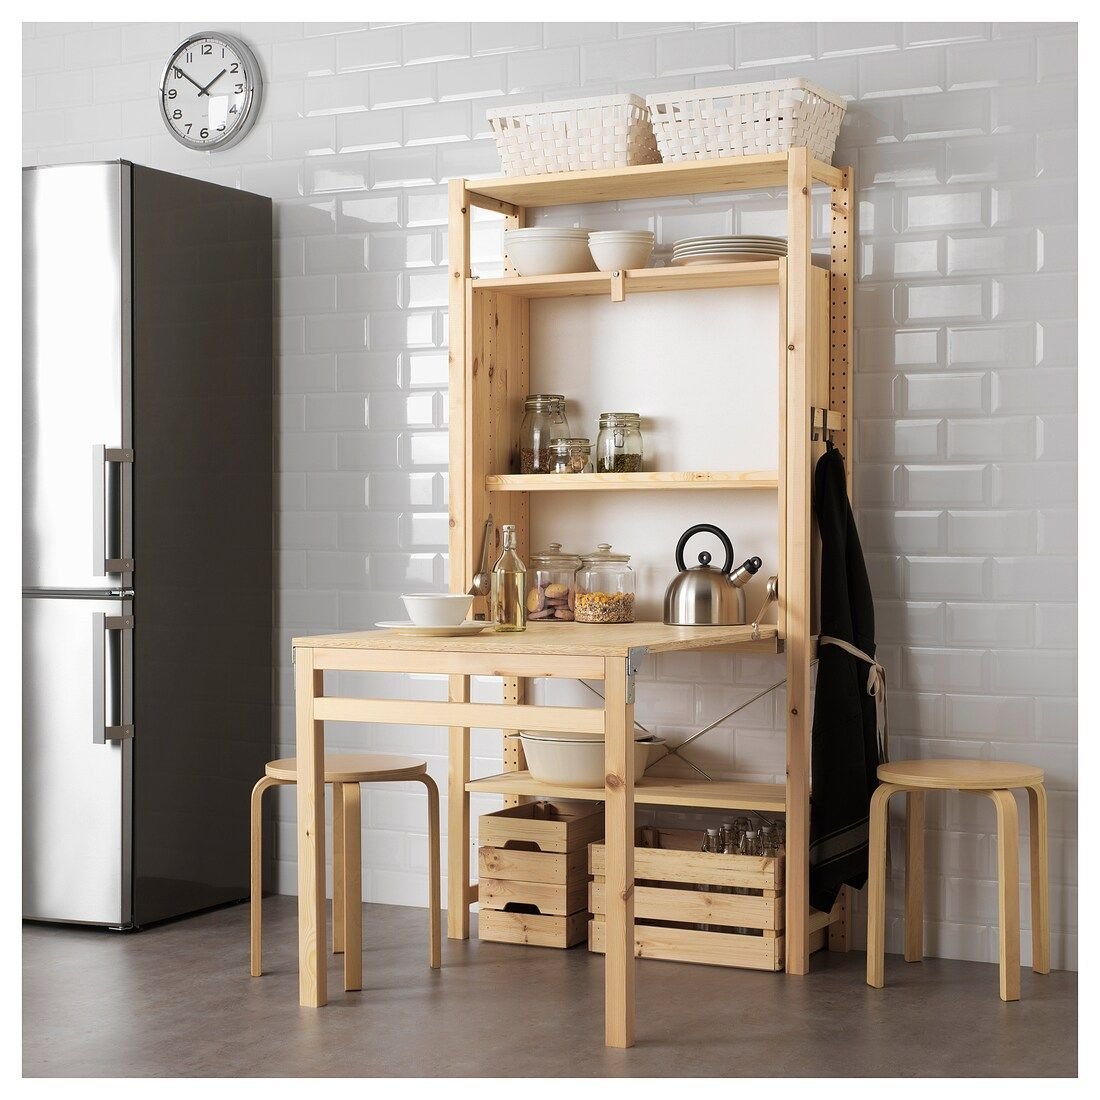 20+ Ikea folding craft table with storage ideas in 2021